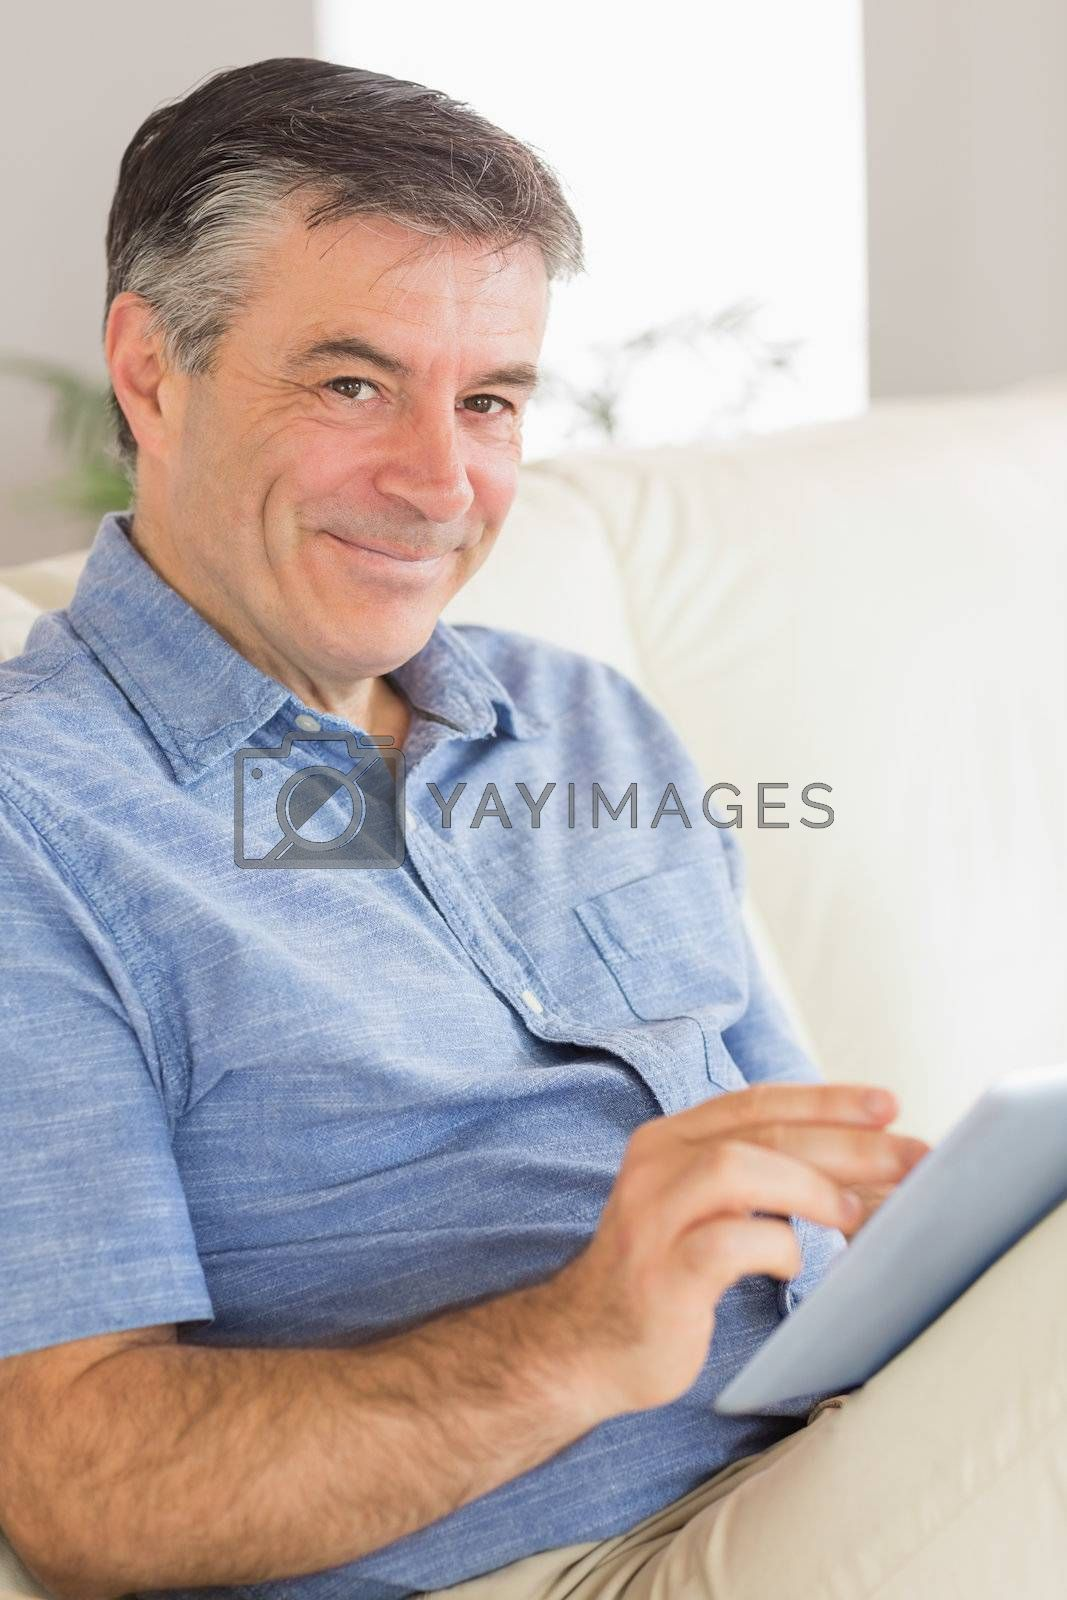 Smiling man sitting on a sofa using a tablet pc by Wavebreakmedia